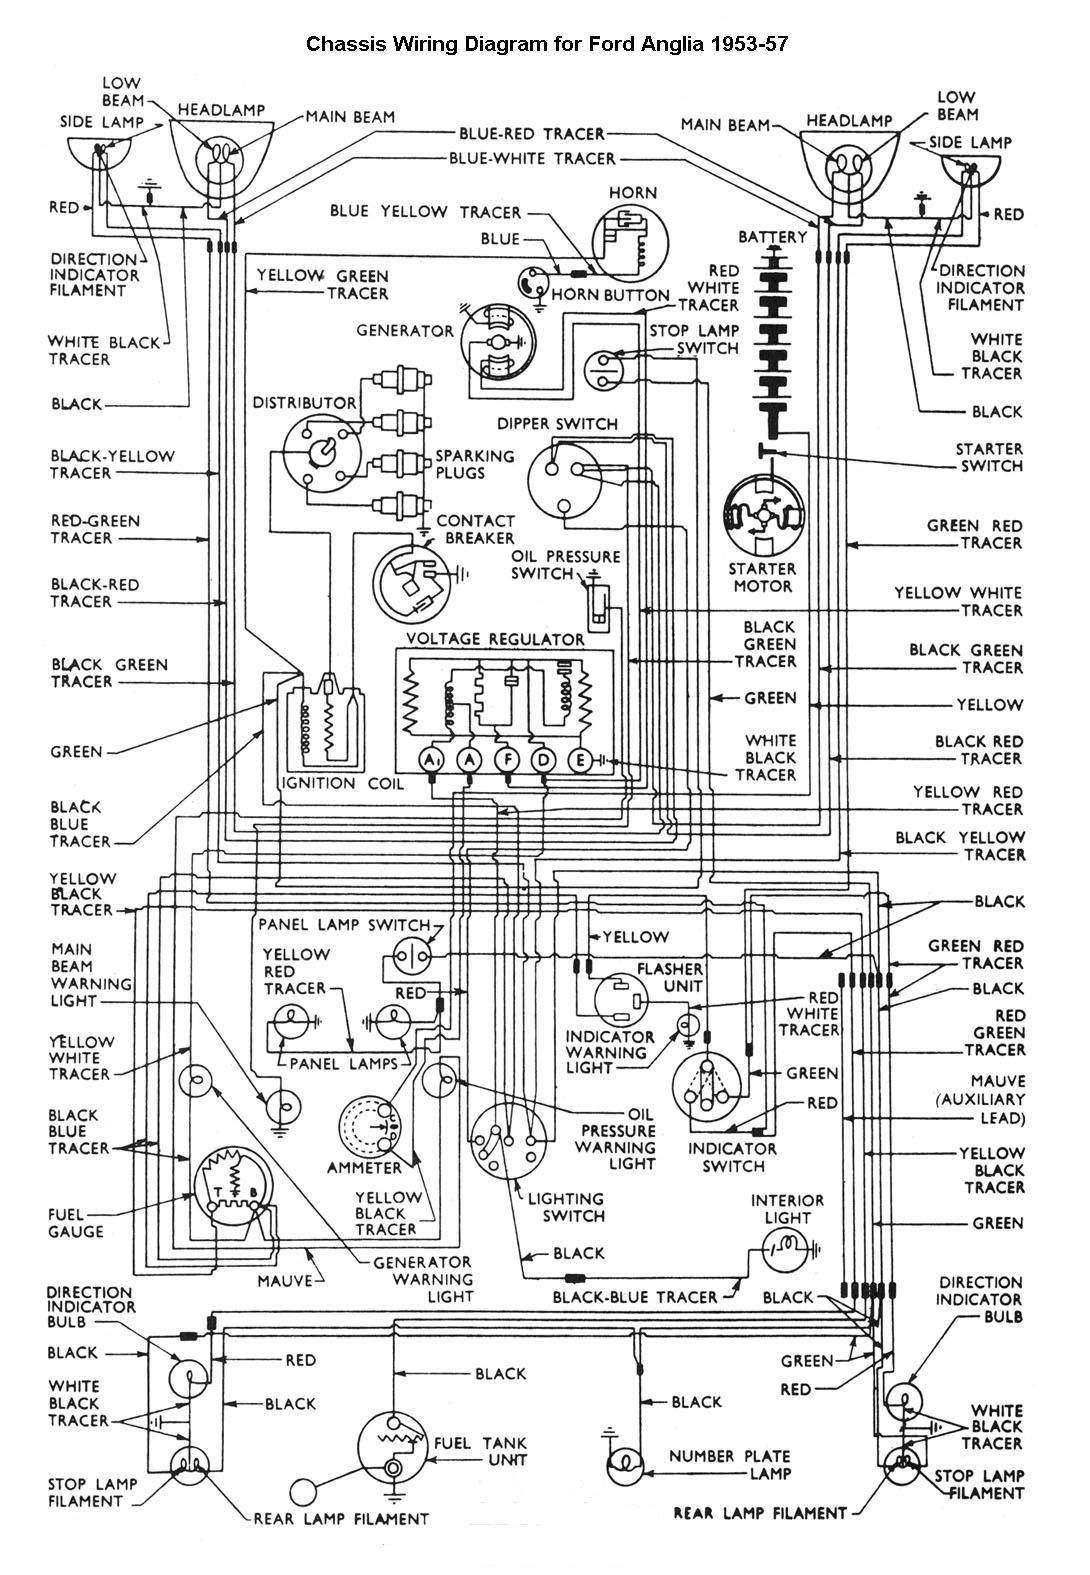 medium resolution of car wiring diagram mech truck repair cars motor car rover 75 electrical circuit diagrams auto repair manual forum